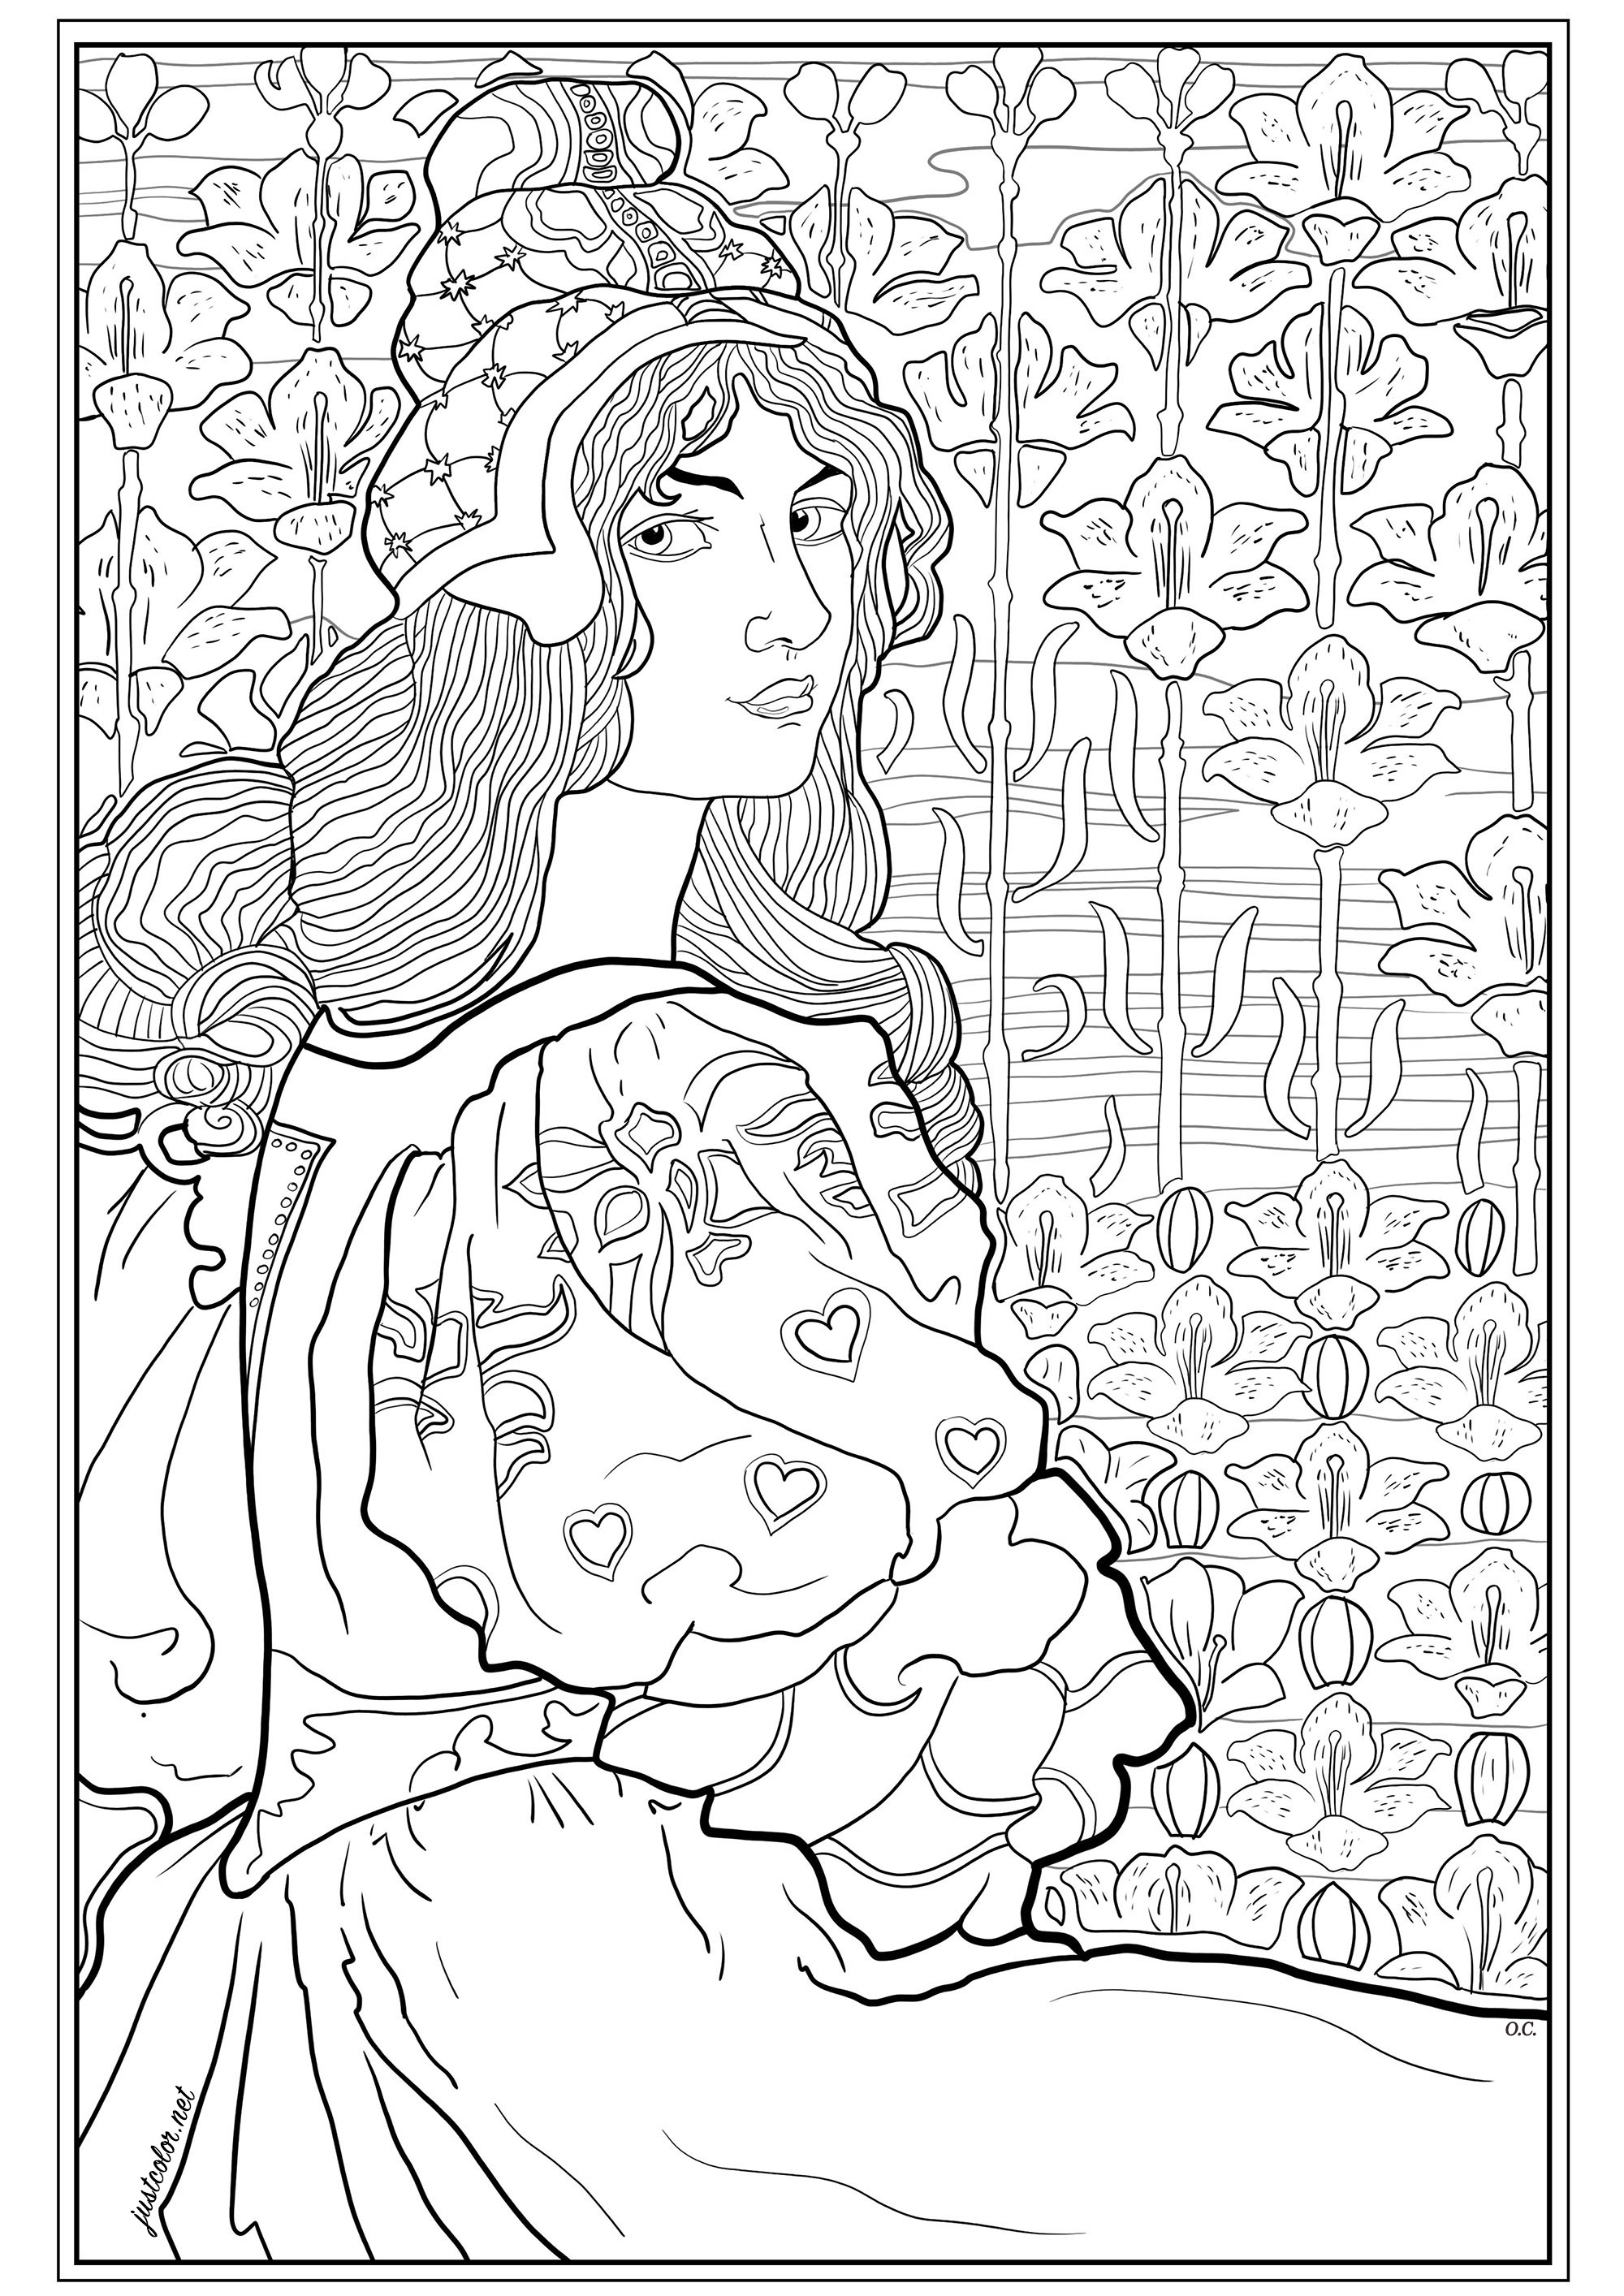 Coloring page created from an original lithograph by Louis Rhead (1898) , edited for 'L'Estampe Moderne' (19th century French newspaper). This illustration represents Jane, a young woman with long hair, on a background of stylized lilies.